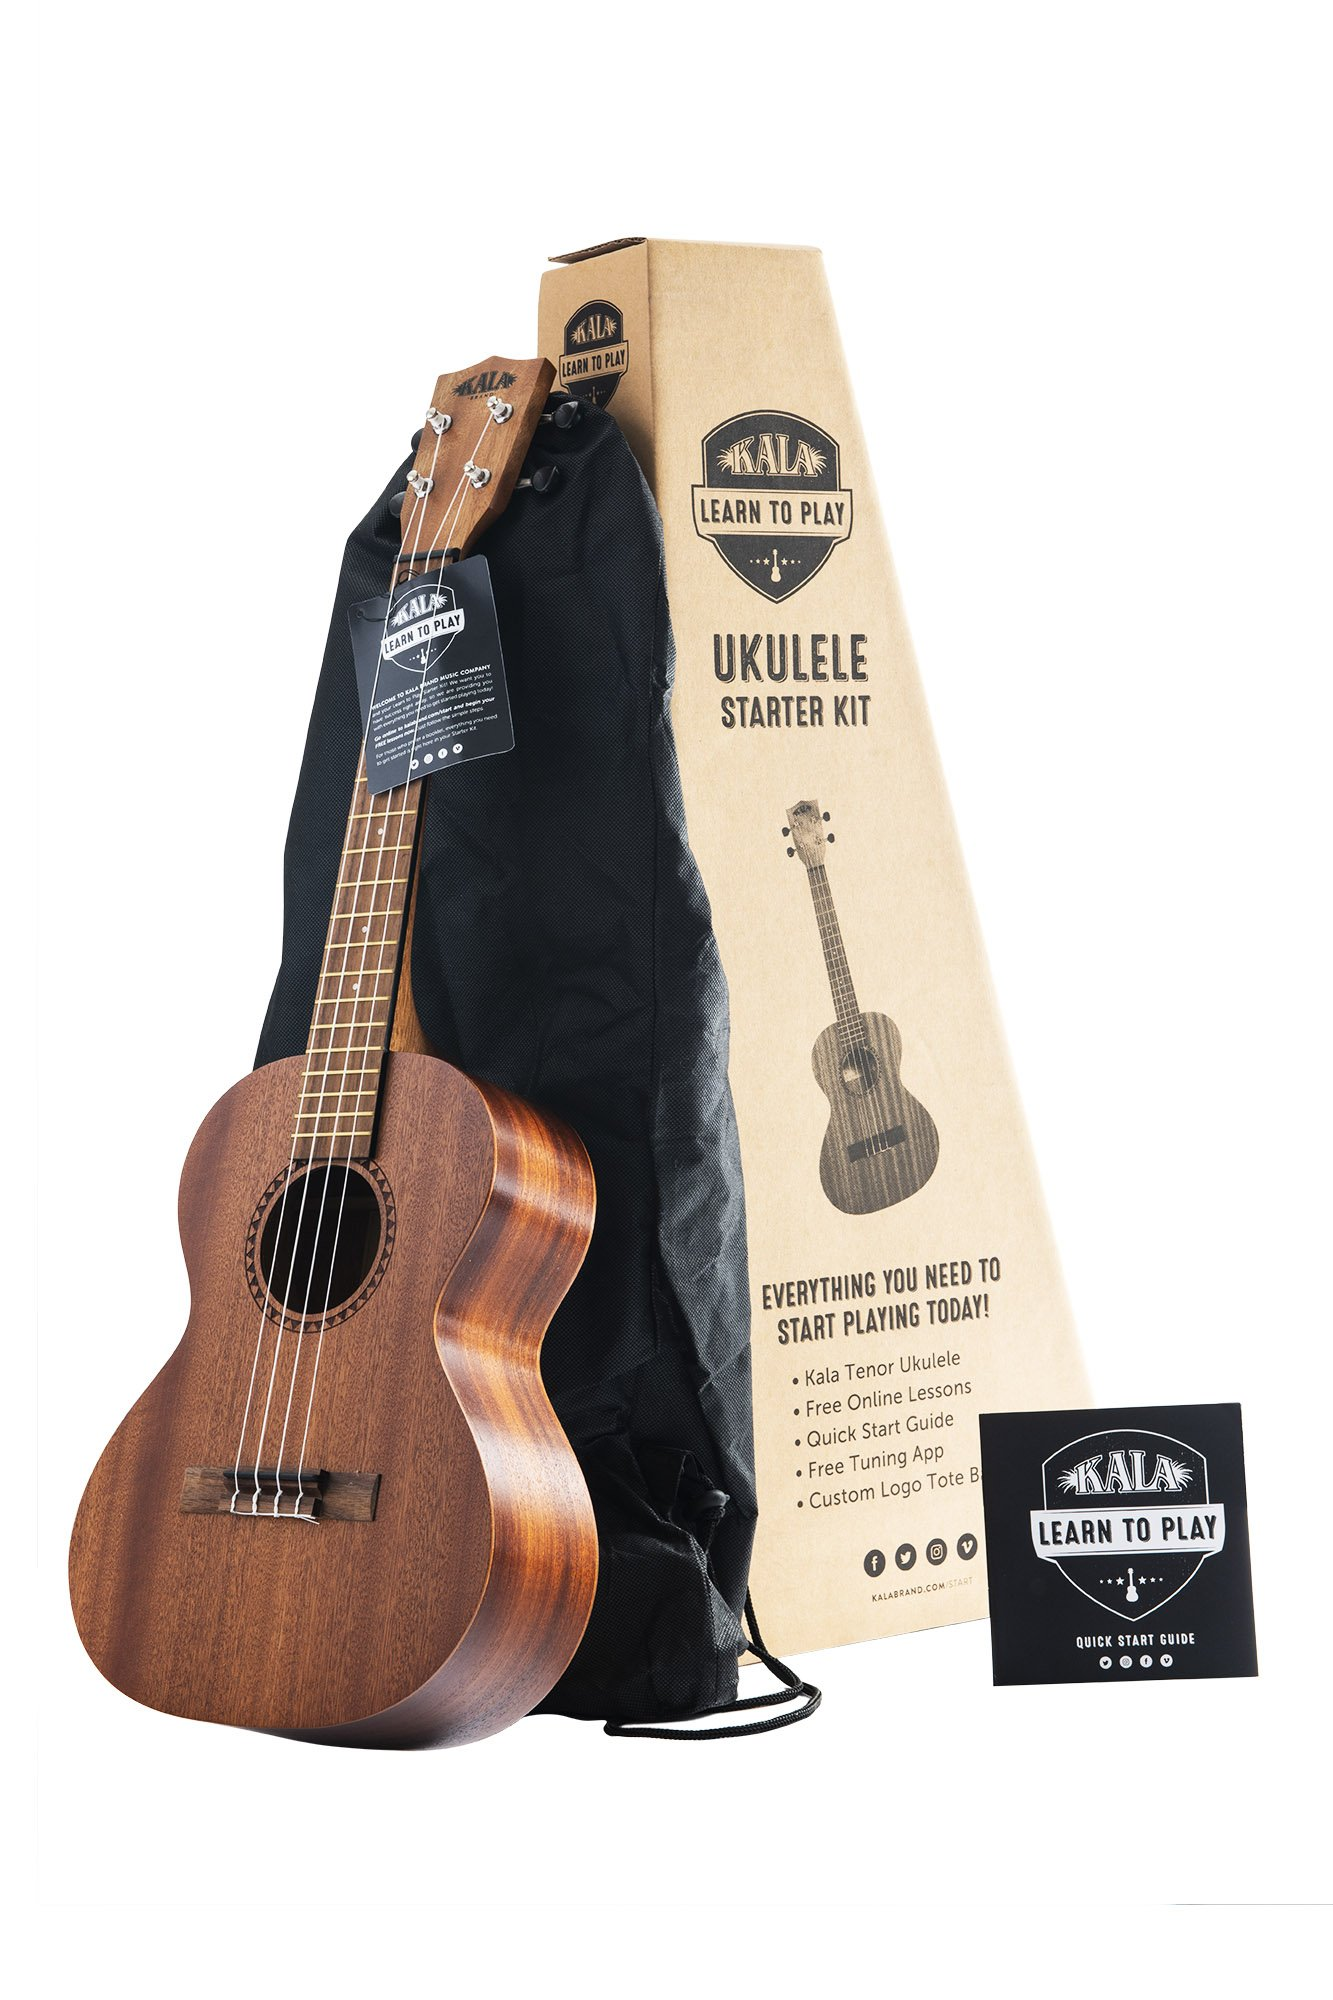 Official Kala Learn to Play Ukulele Tenor Starter Kit, Satin Mahogany – Includes online lessons, tuner app, and booklet (KALA-LTP-T)